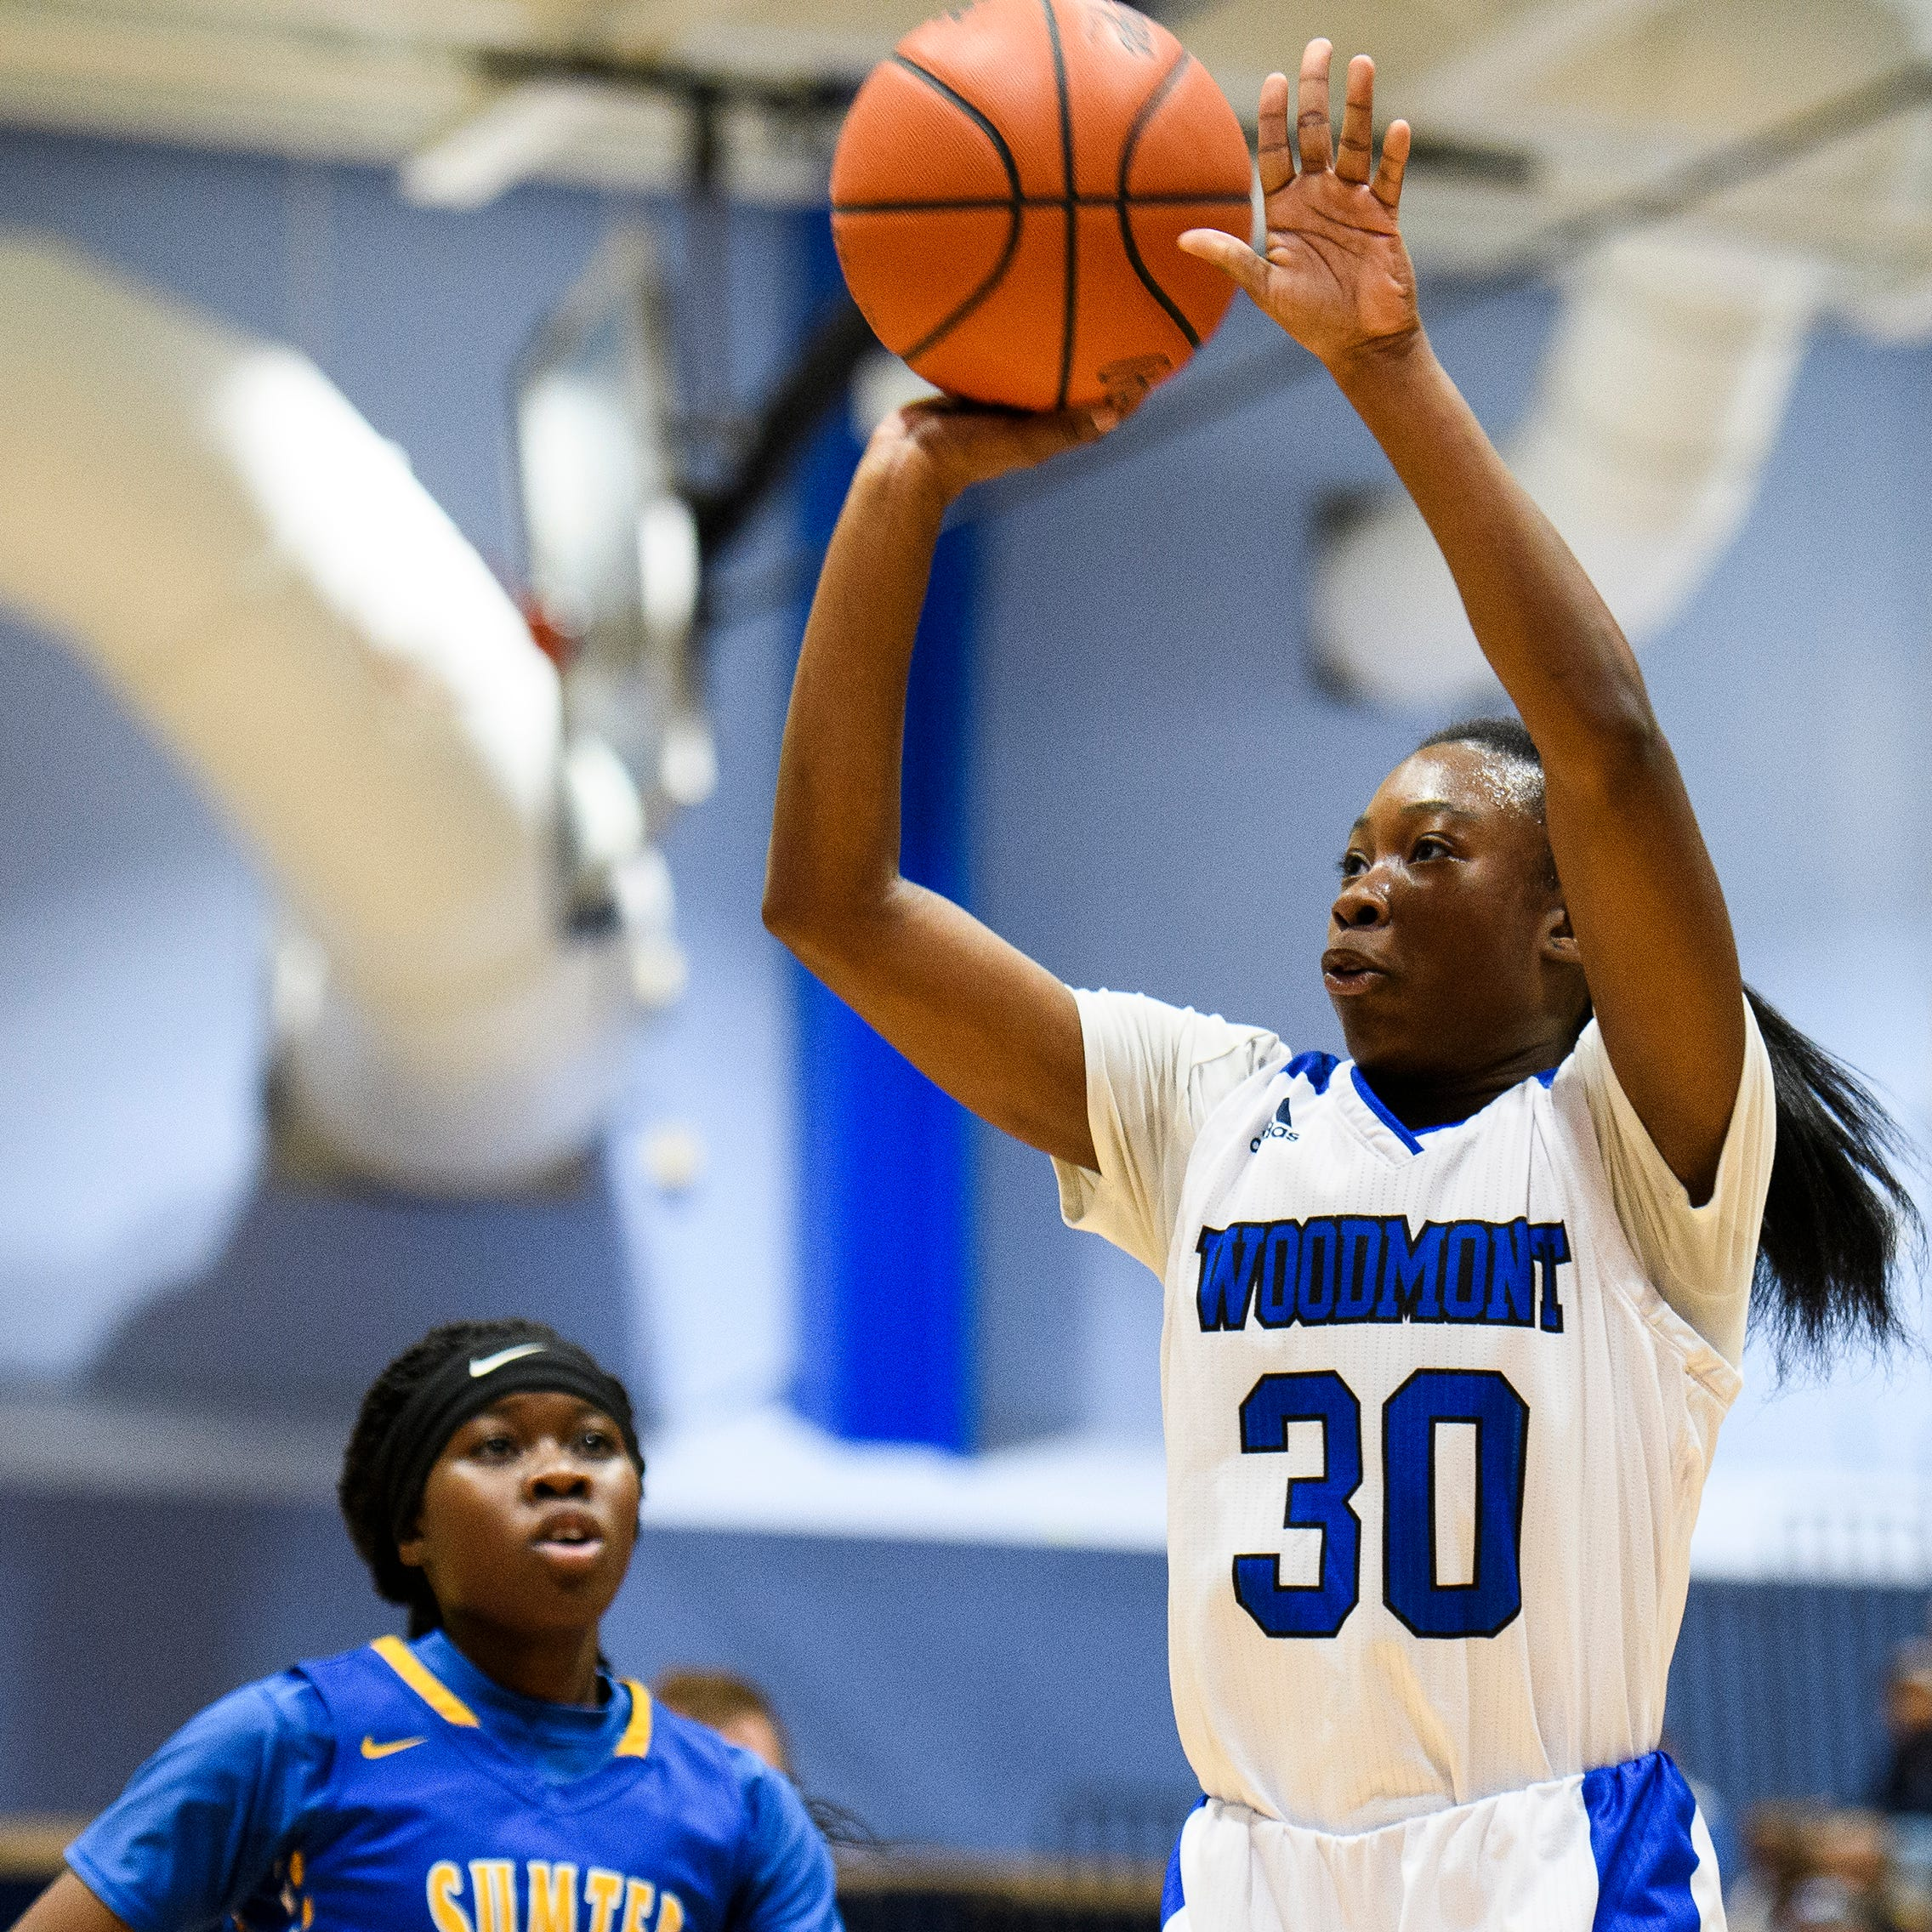 Woodmont girls basketball stumbles, points toward bright future